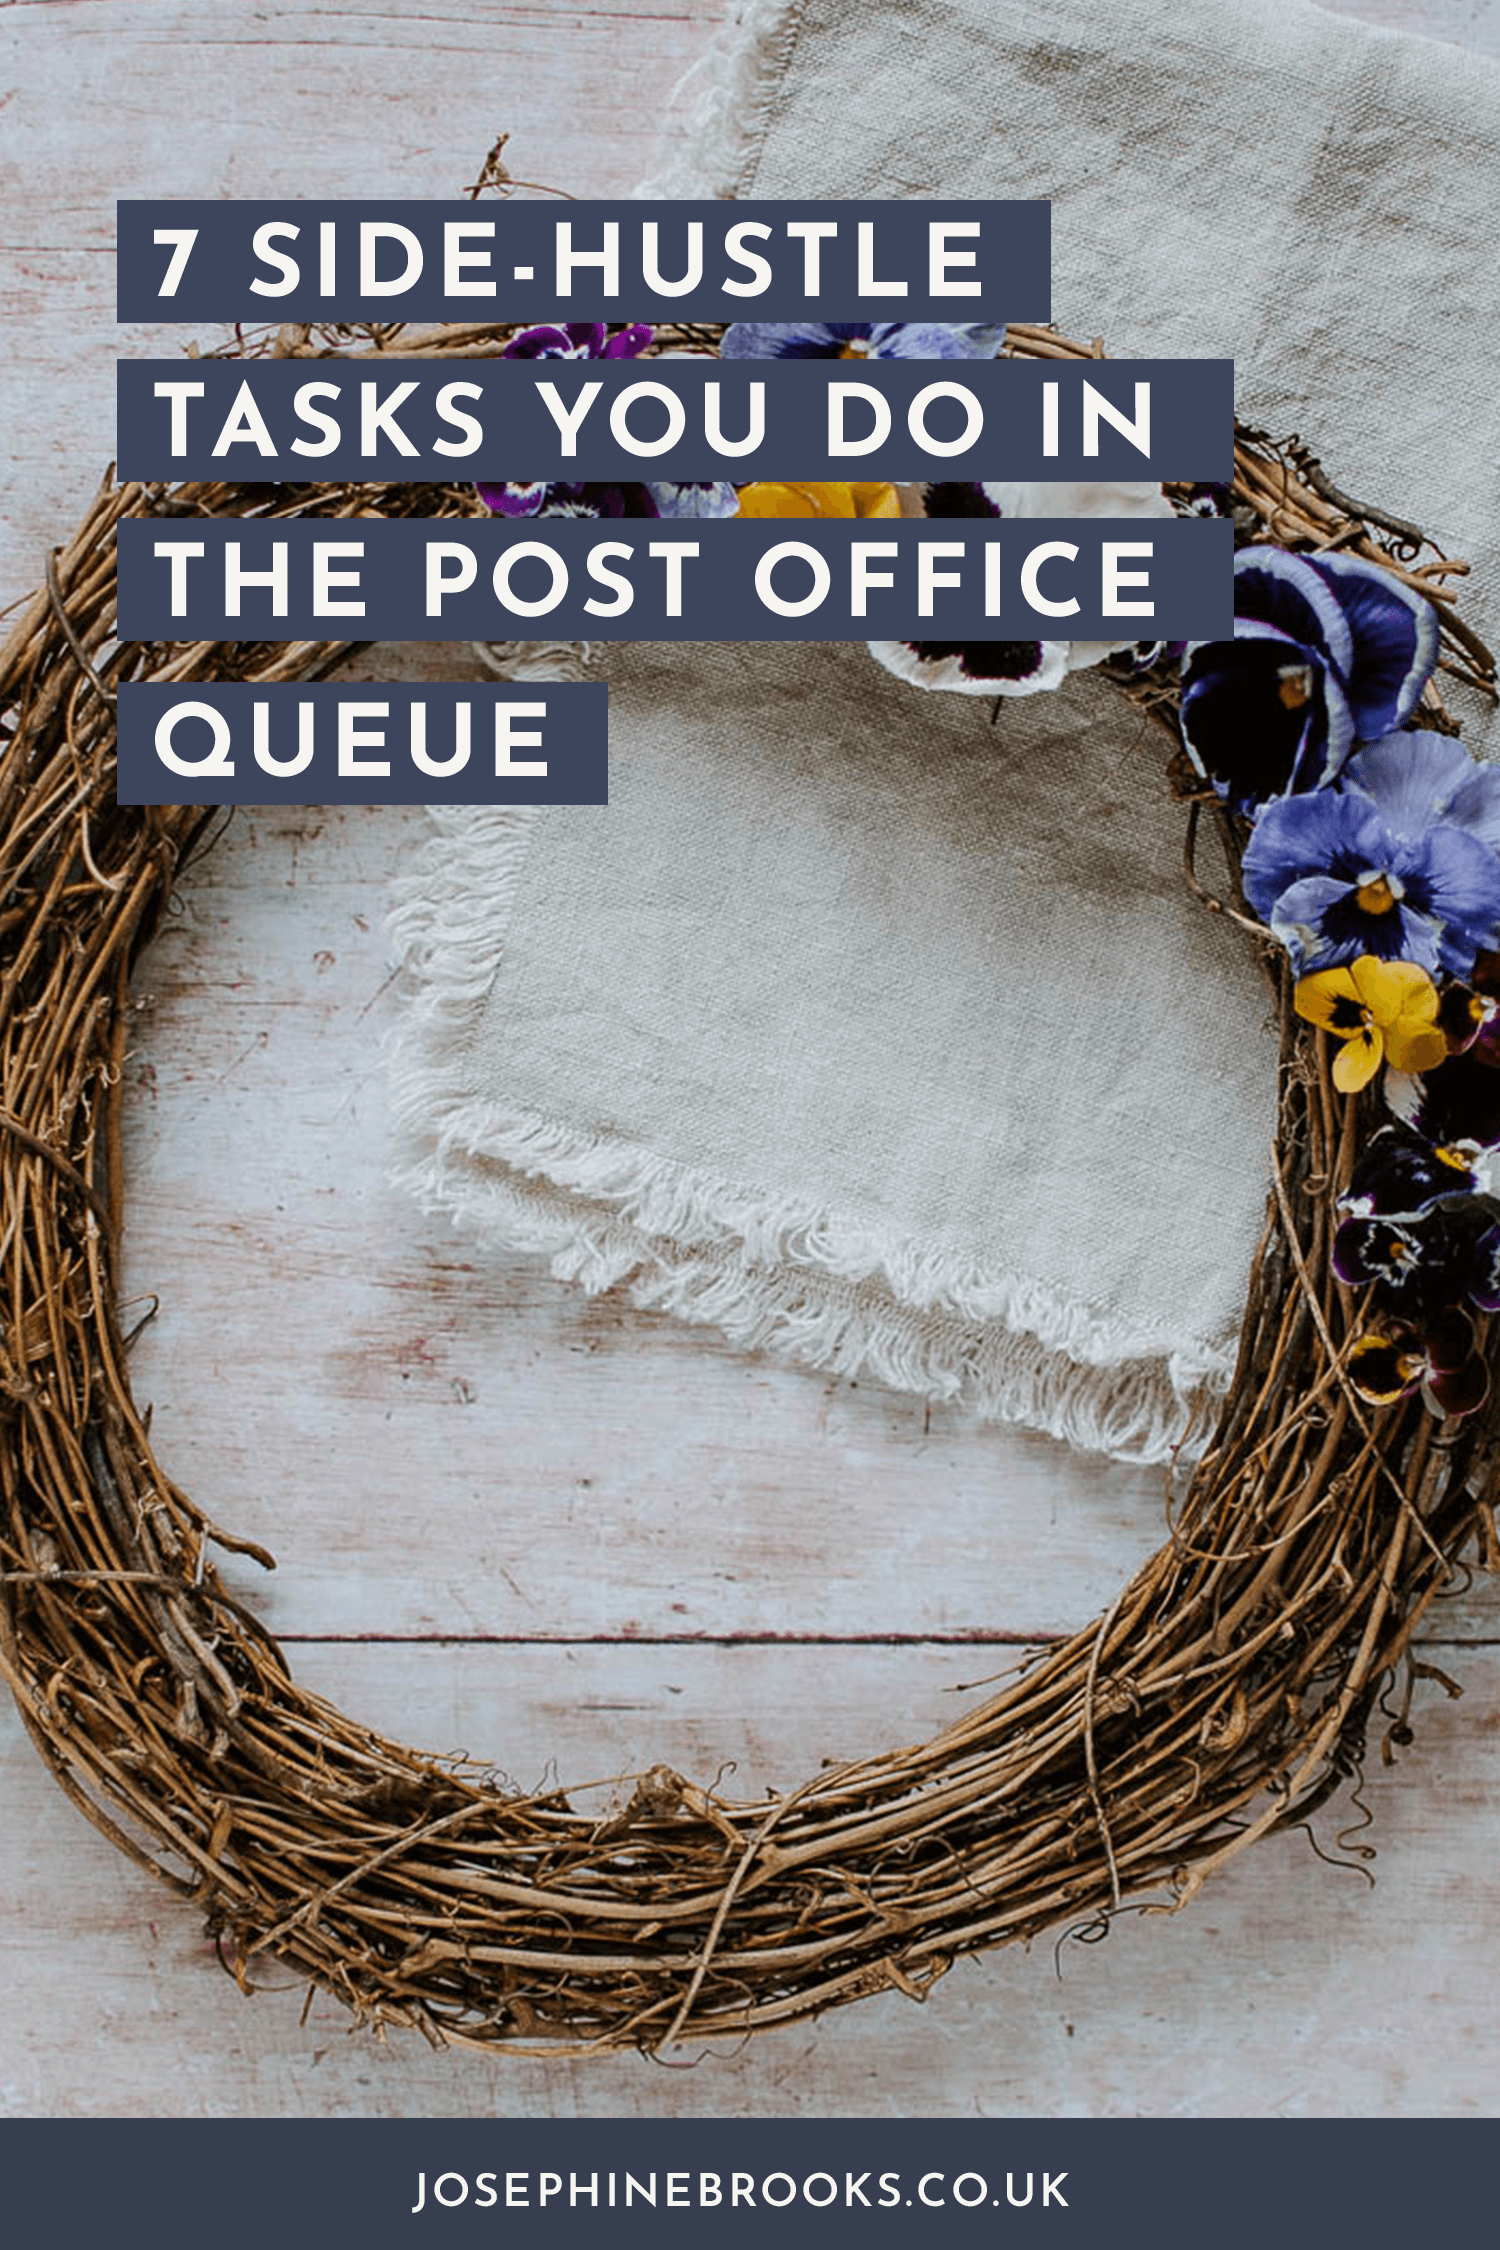 7 side-hustle tasks you can do in the post office queue, Productivity tips for side-hustlers, Side-Business time management, Creative time management tips | Josephine Brooks